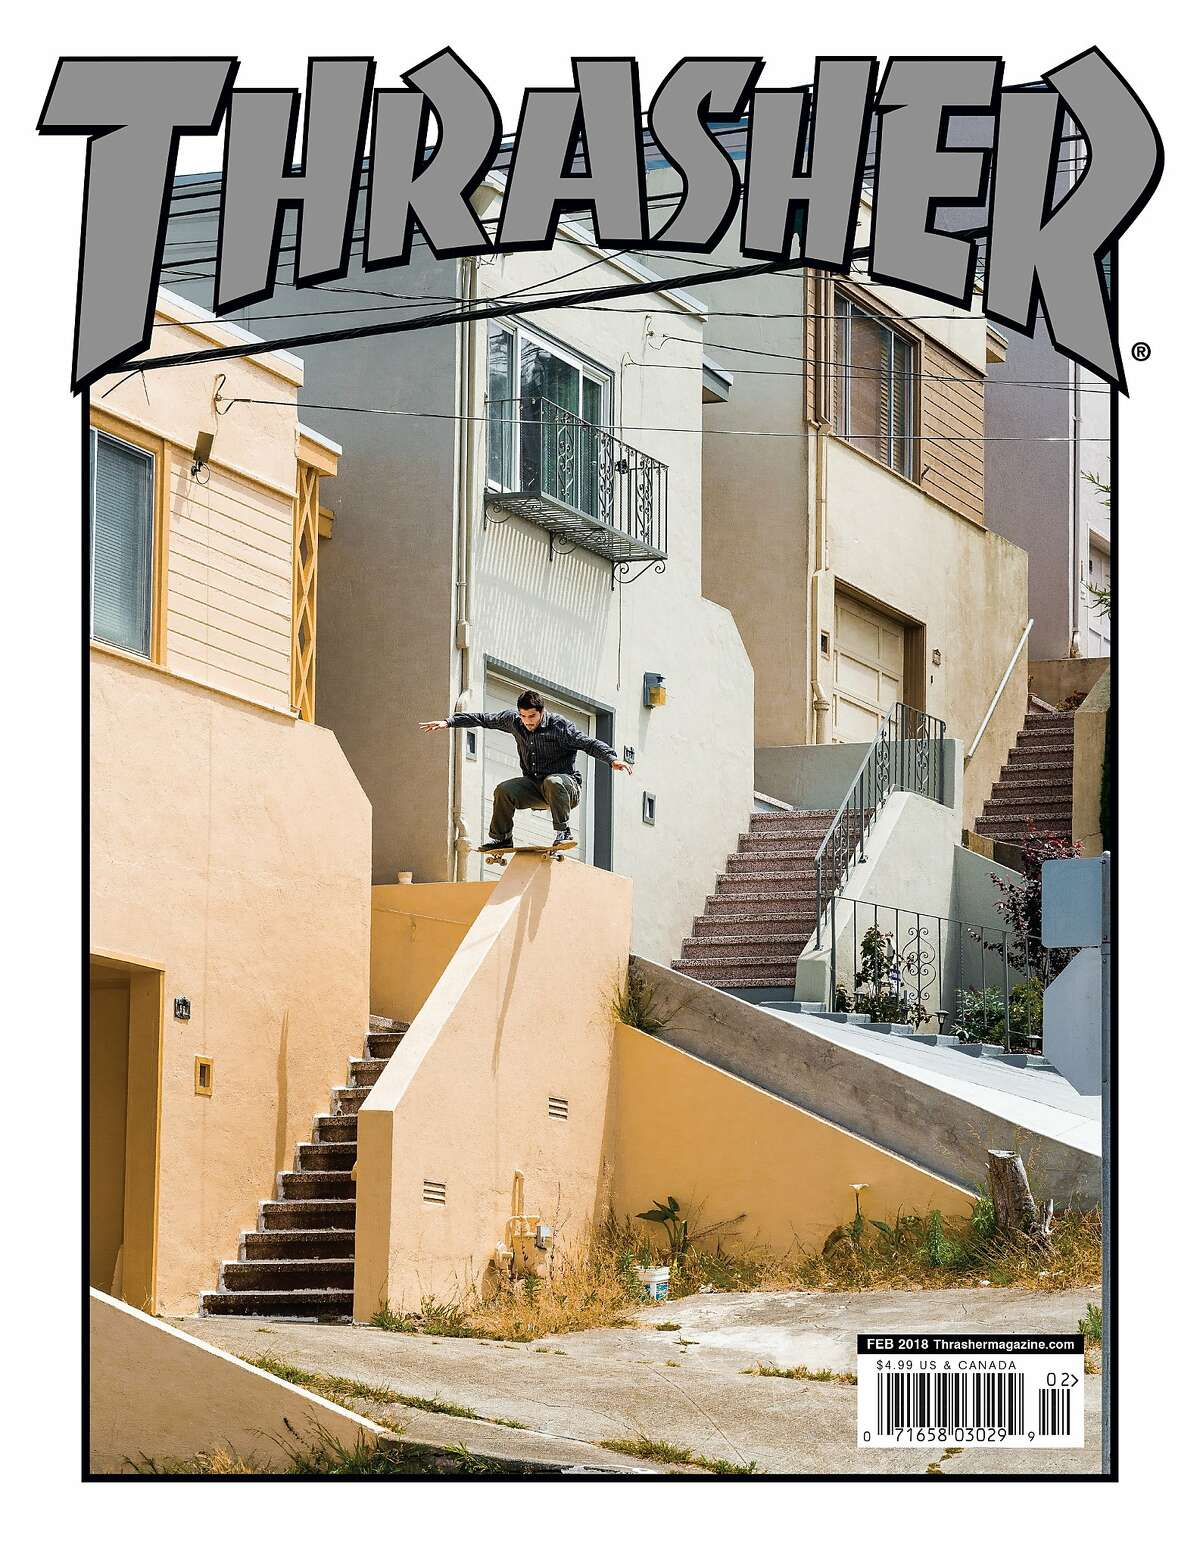 A past cover from Thrasher magazine. The San Francisco based publication turns 40 in 2021.